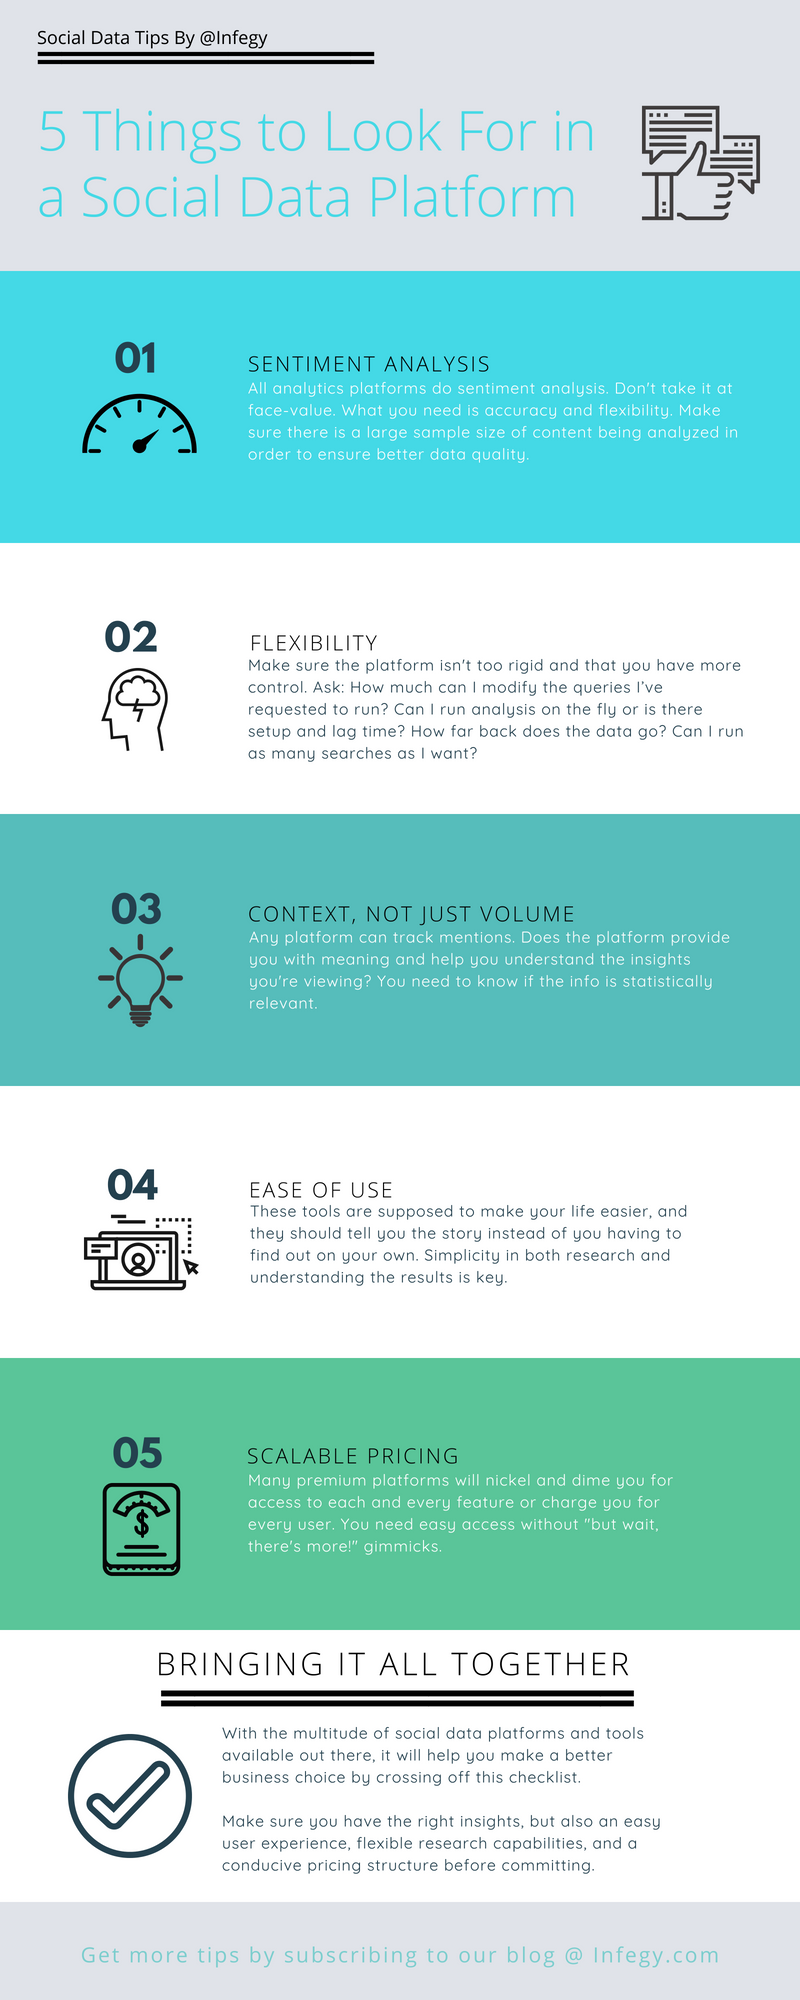 5 Things to Look For In a Social Data Platform INFOGRAPHIC FINAL